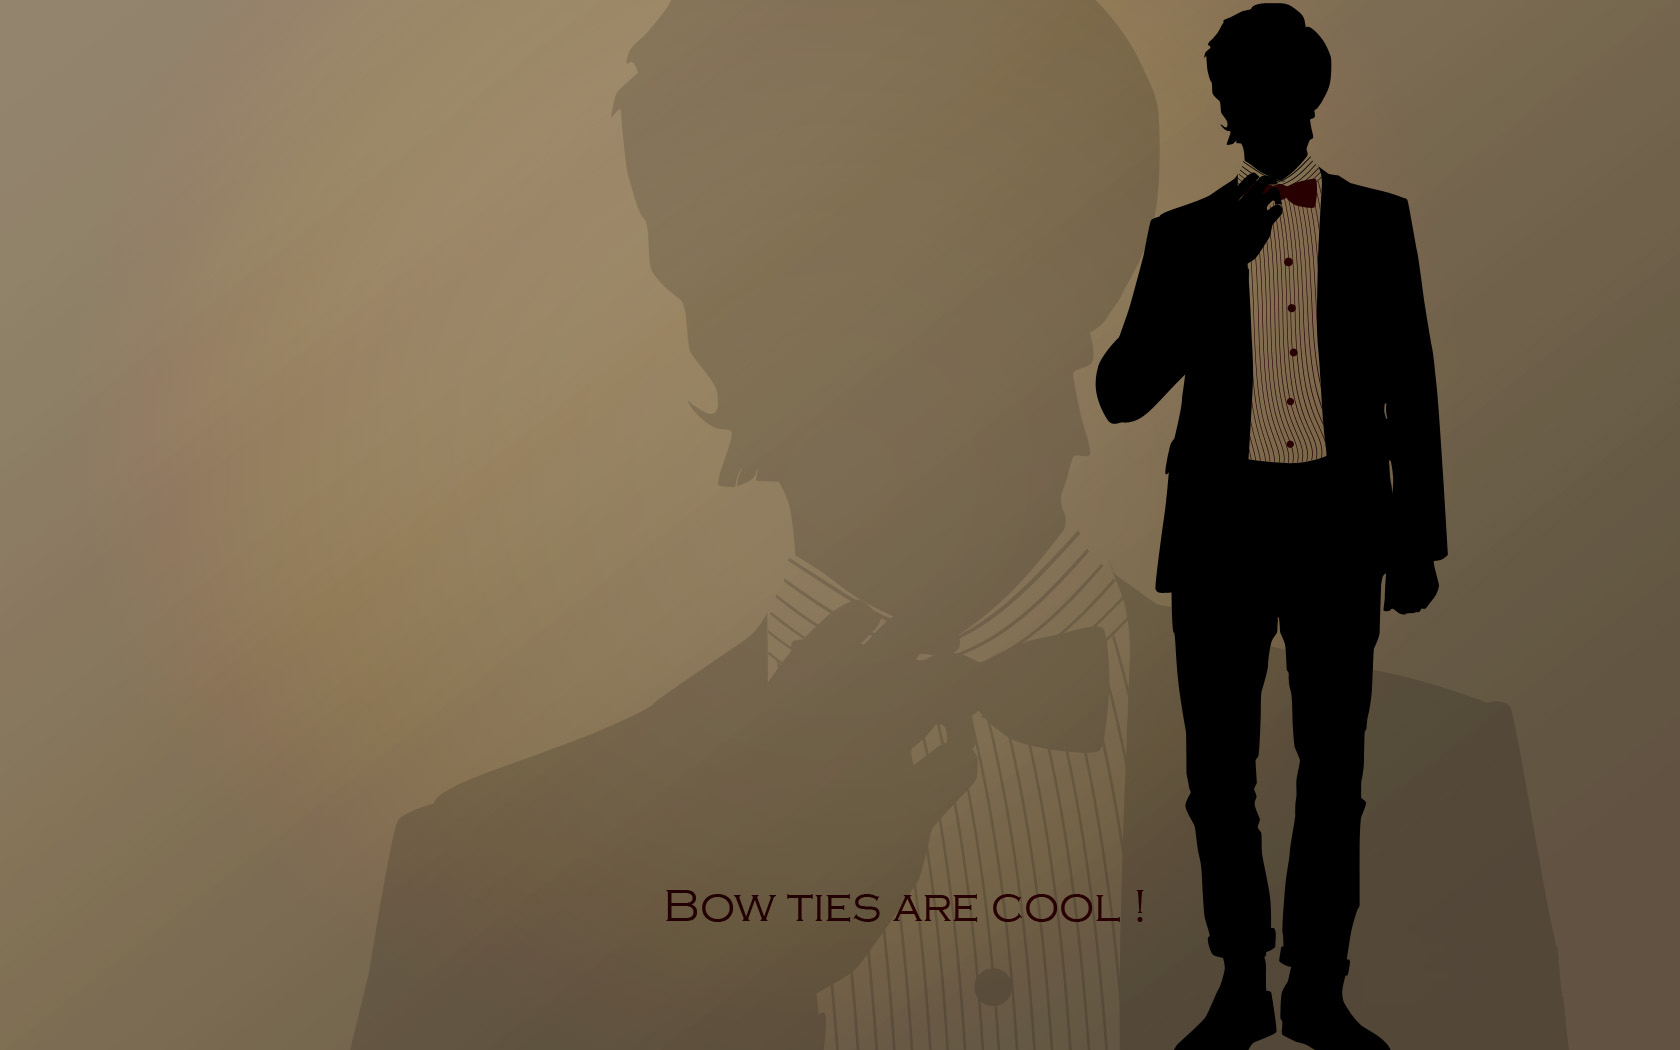 Eleventh Doctor Who Bowtie